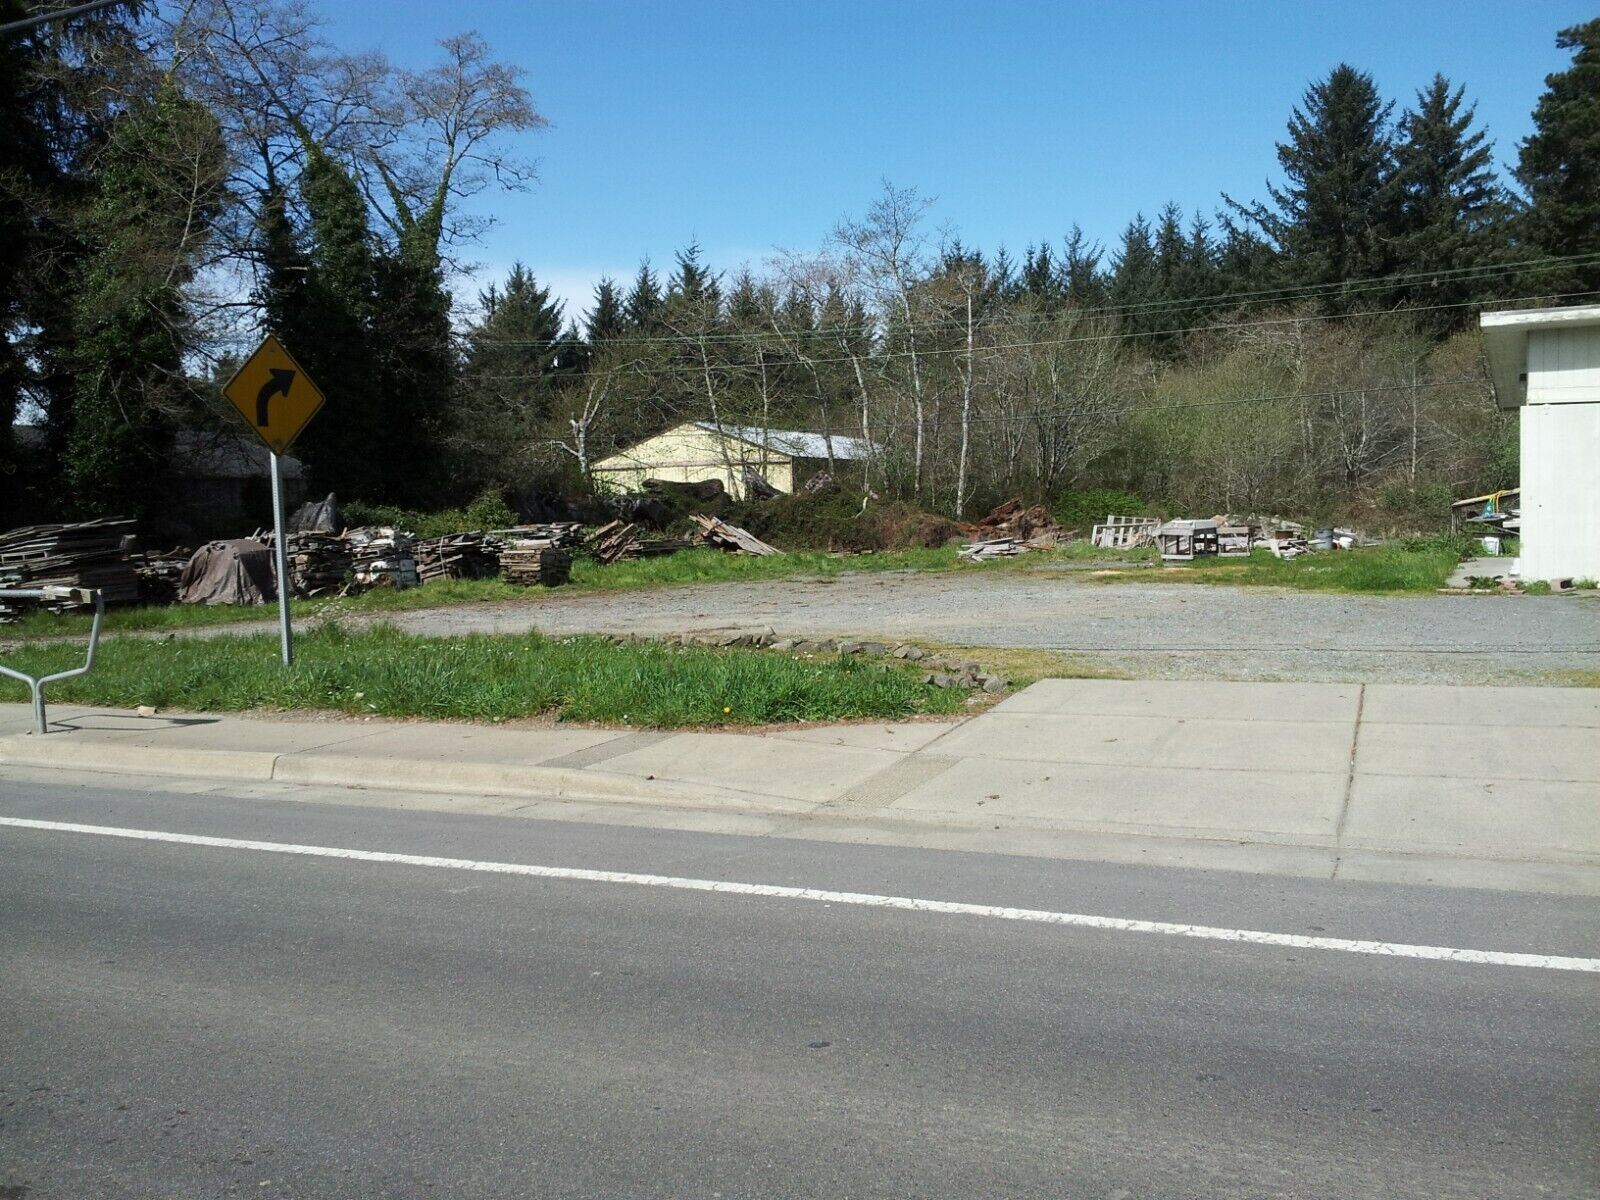 2 Lots - 1 Commercial 1 Residential Crescent City CA 3/4 Miles To Beach Harbor - $95,000.00